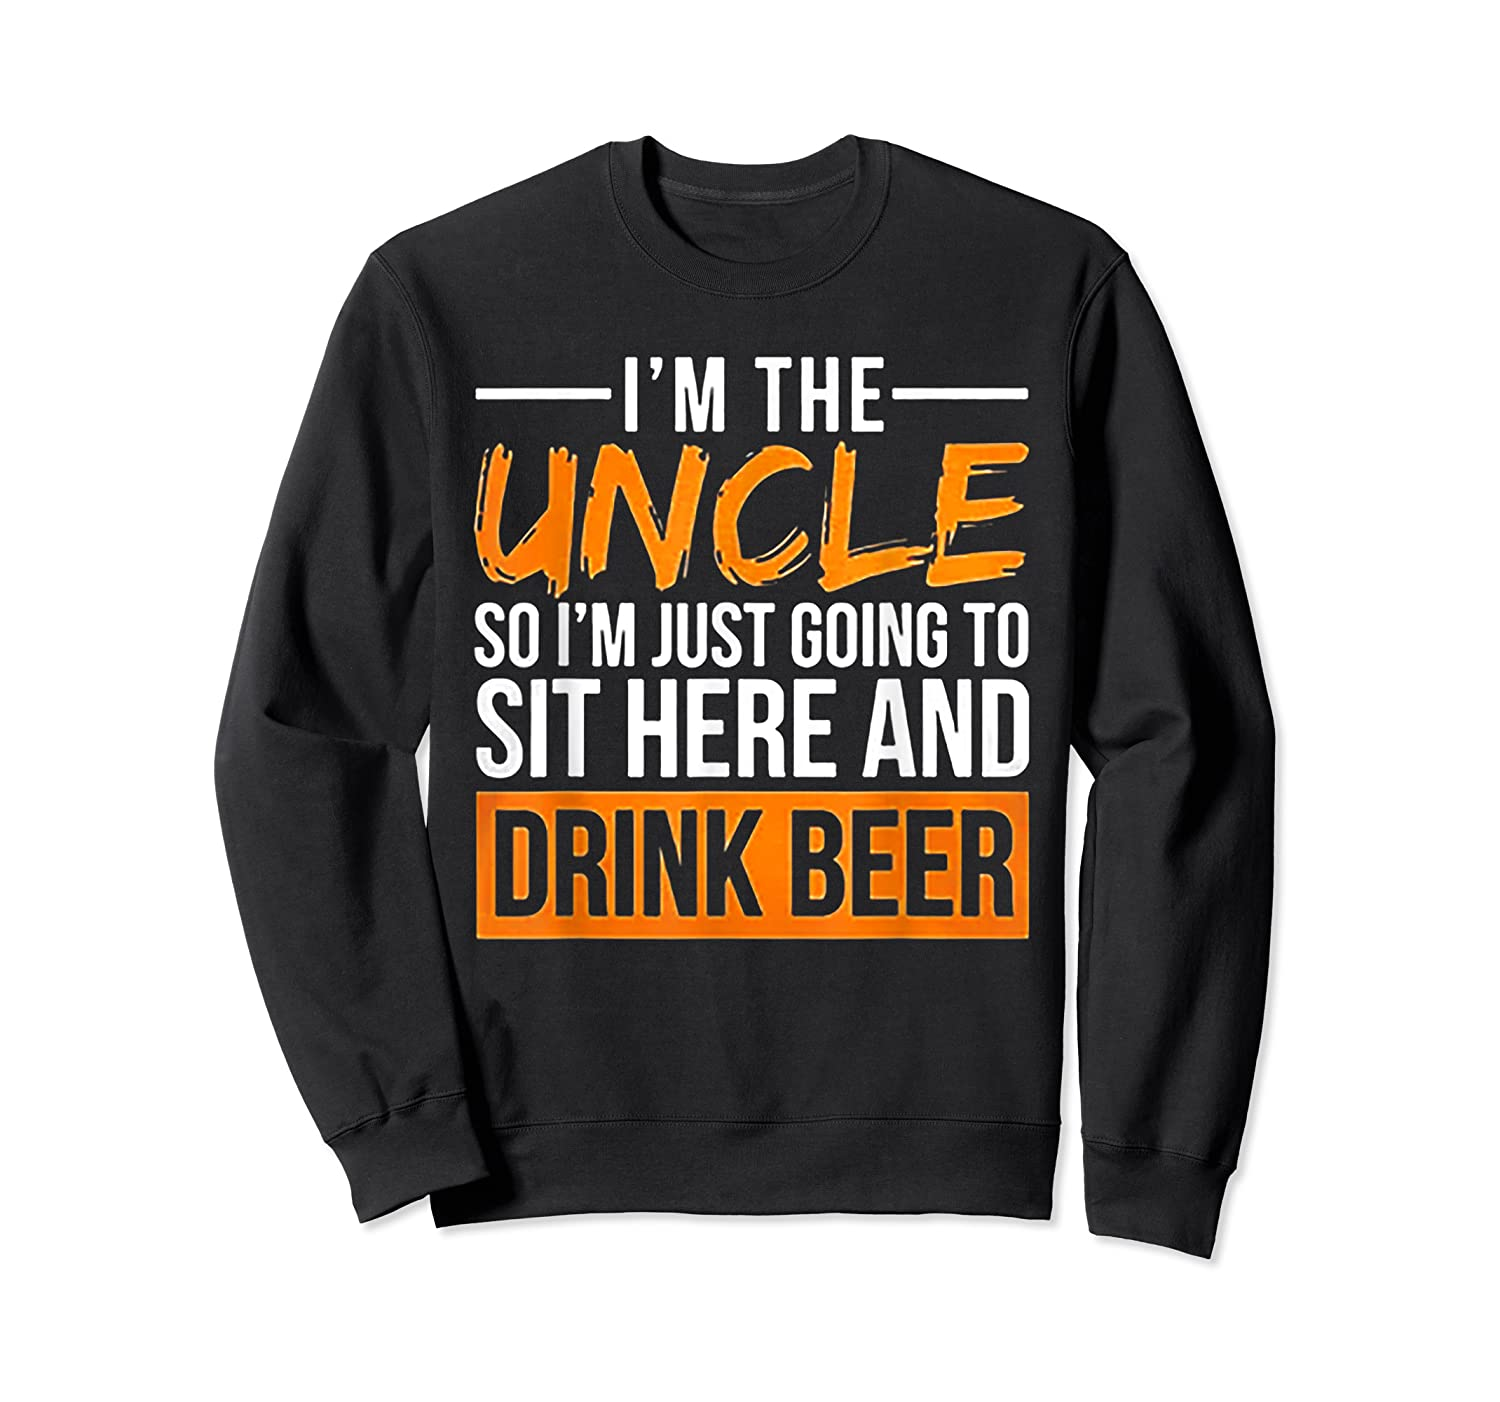 I M The Uncle So I M Just Going To Sit Here And Drink Beer T Shirt Crewneck Sweater